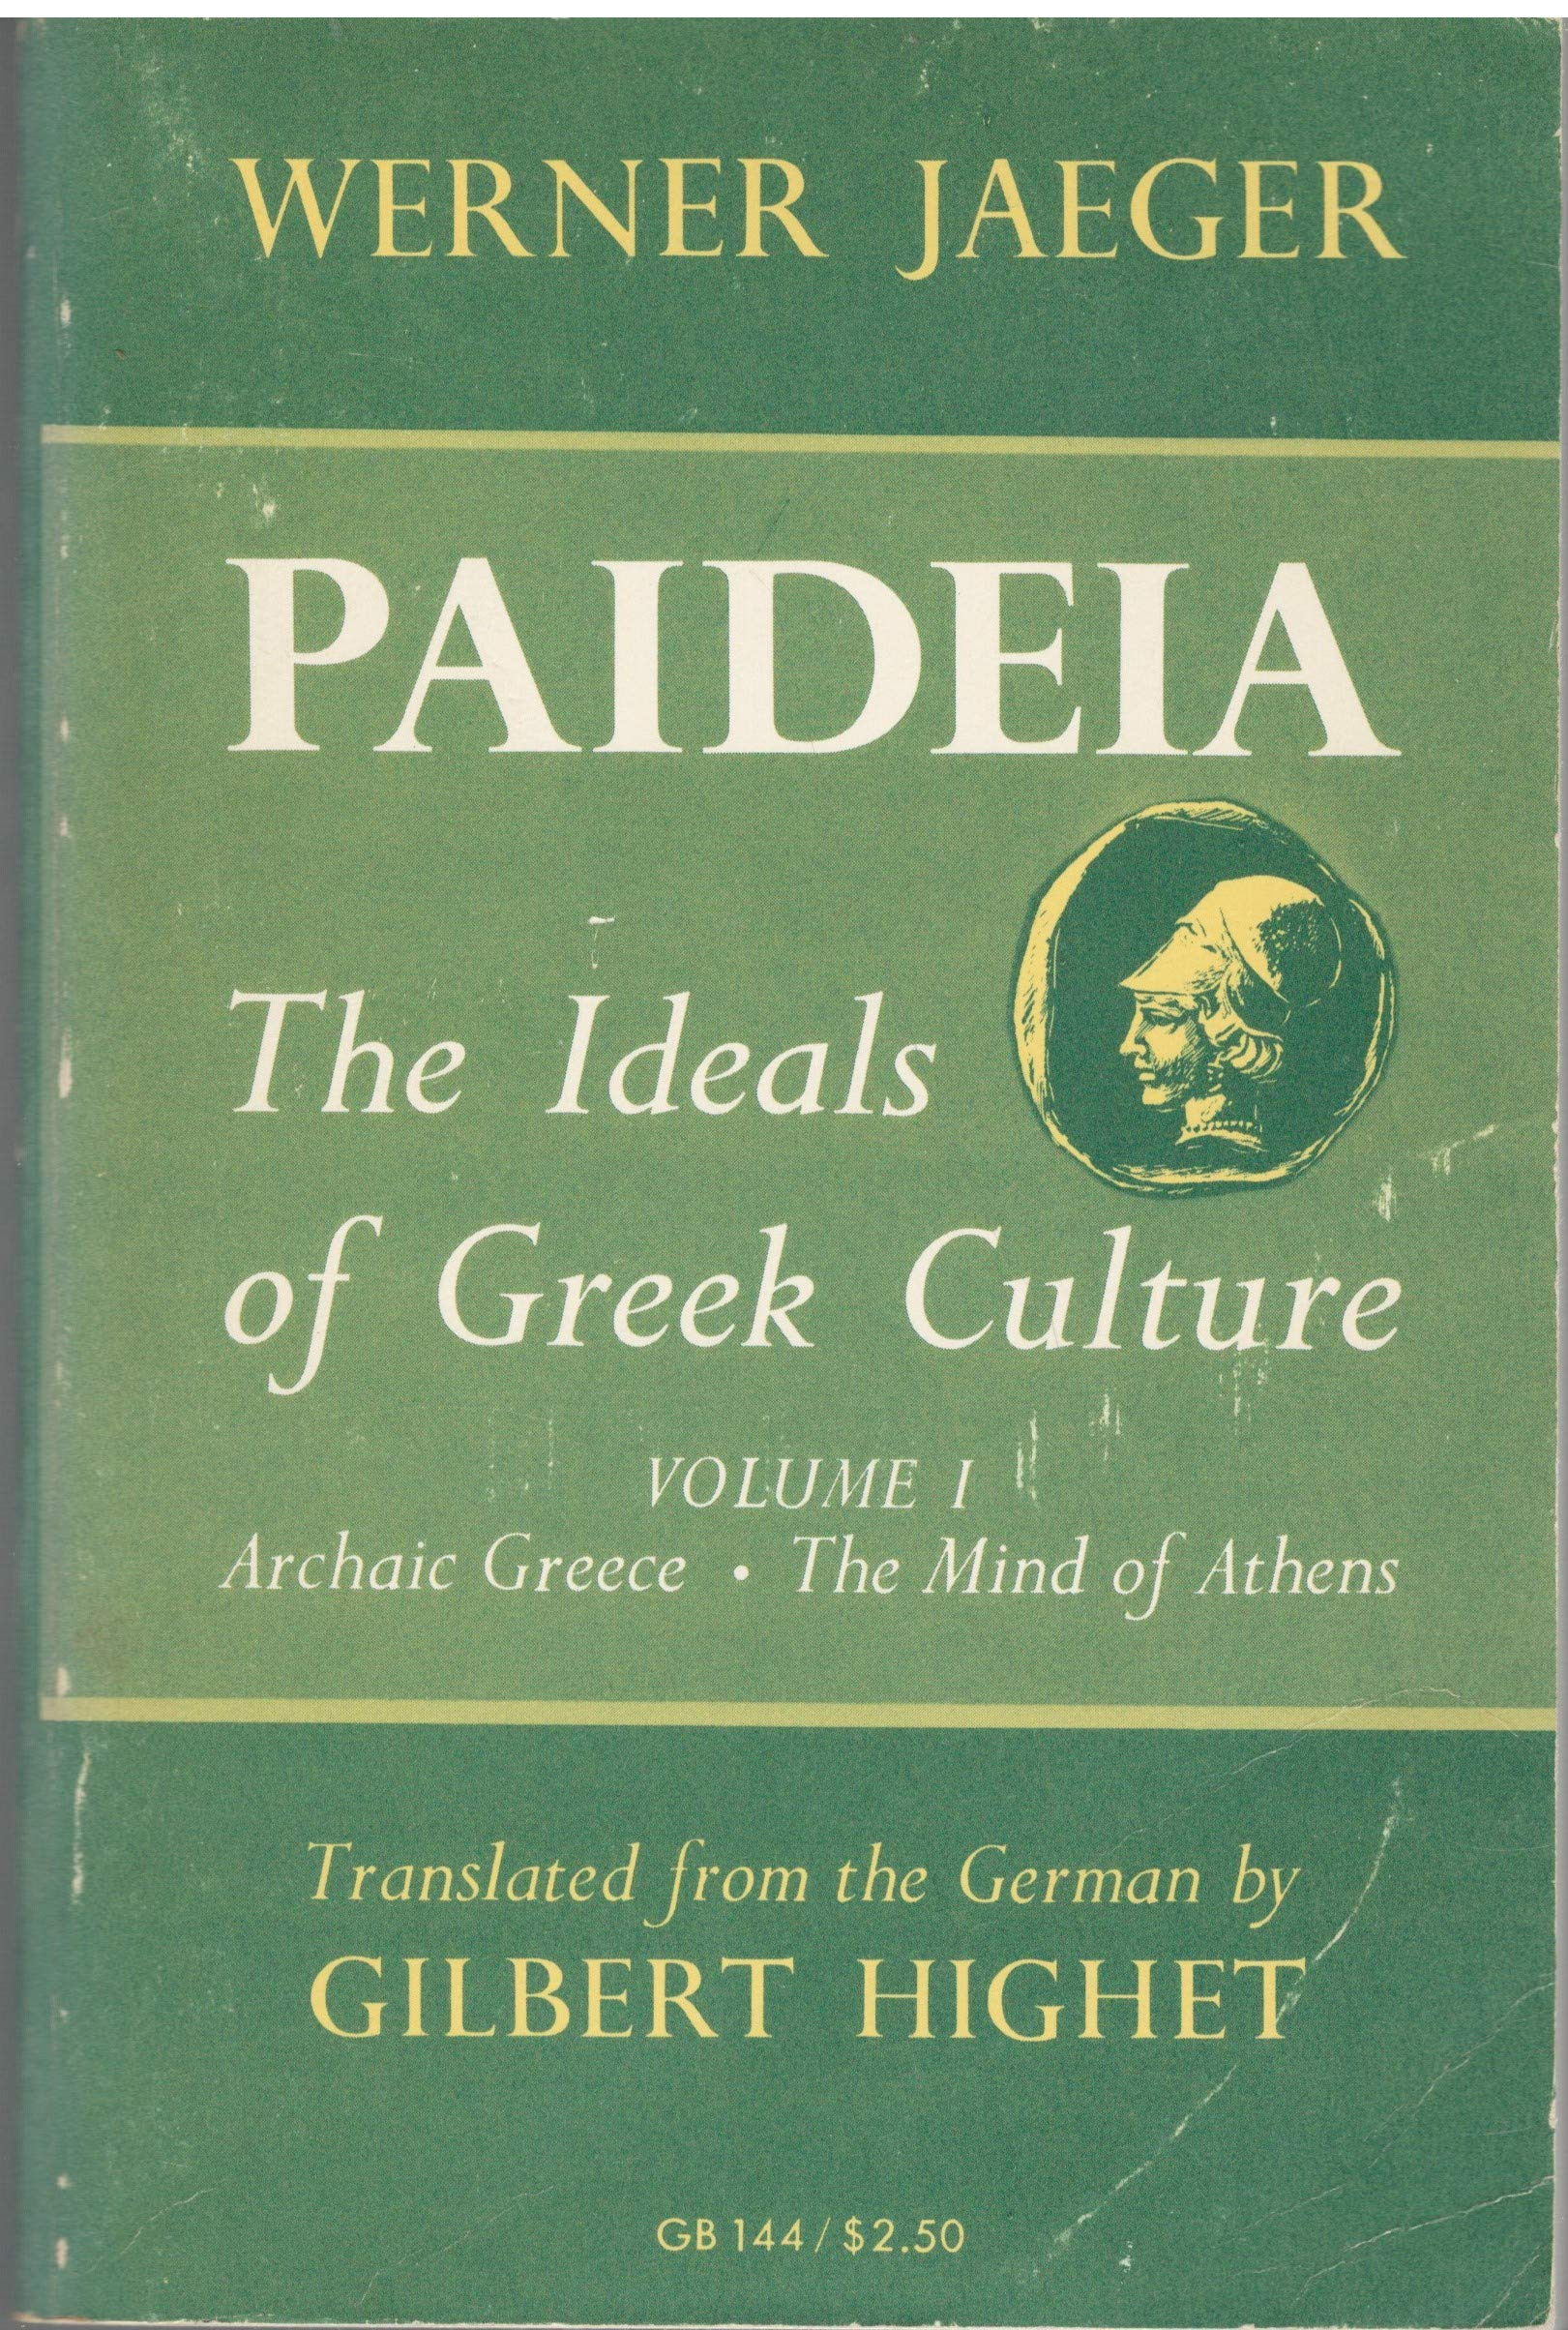 Paideia The Ideals of Greek Culture Volume I Archaic Greece The Mind of Anthens Second Edition, Werner Jaeger